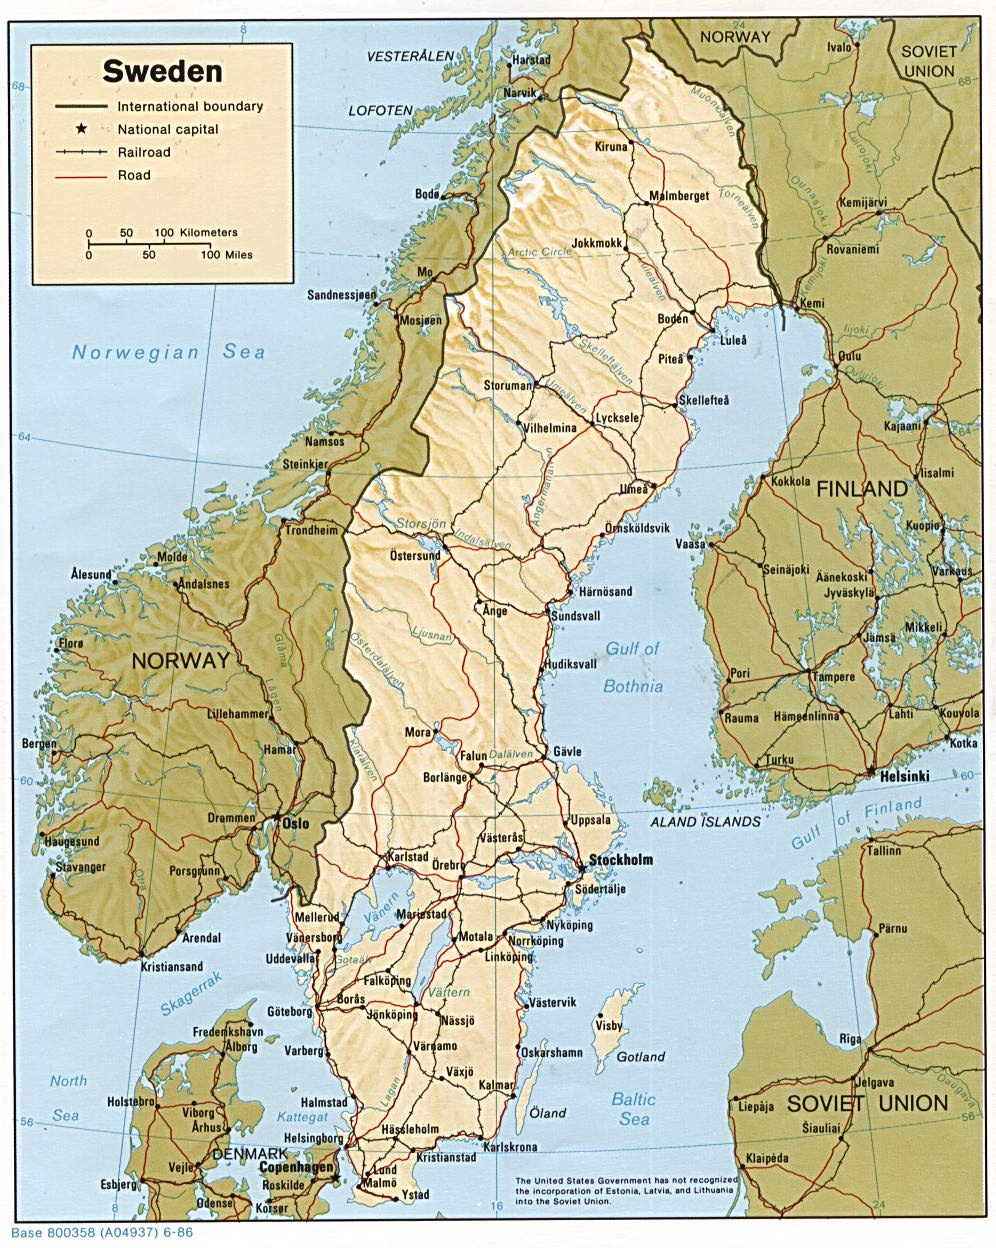 Map Of Sweden , Sweden [Shaded Relief Map] 1986 (269K)